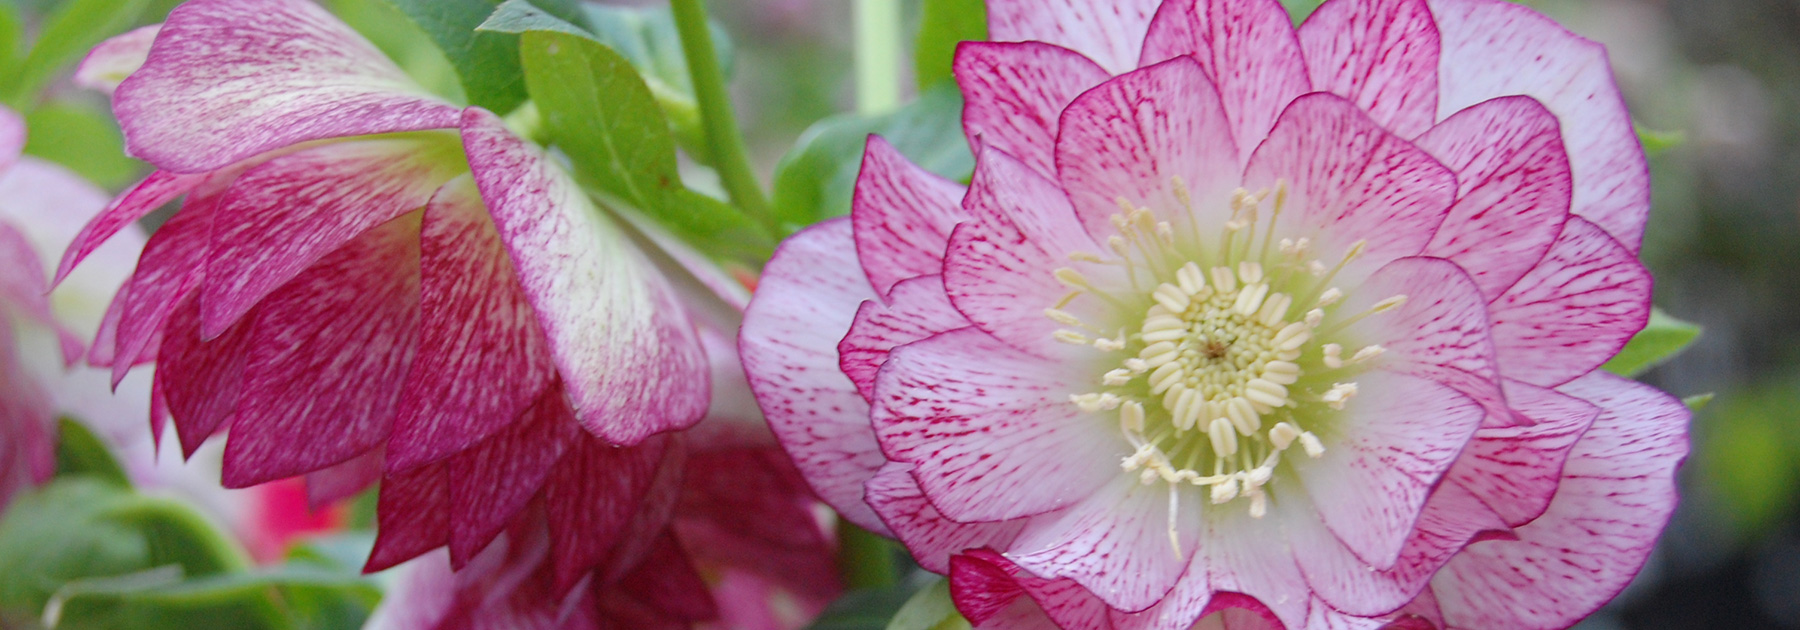 peppermint-ice-double-hellebore